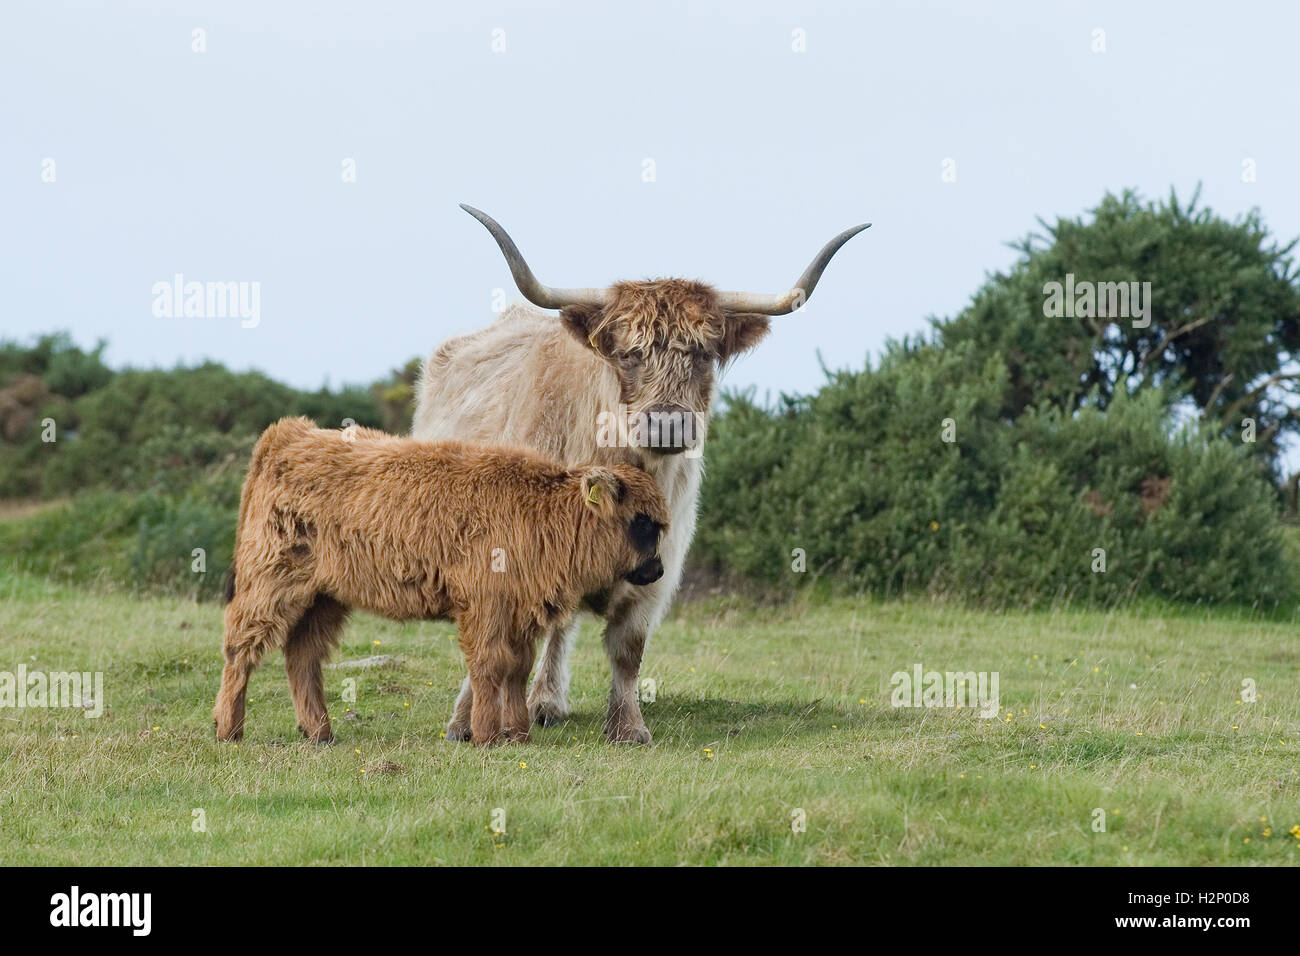 highland cow and calf - Stock Image